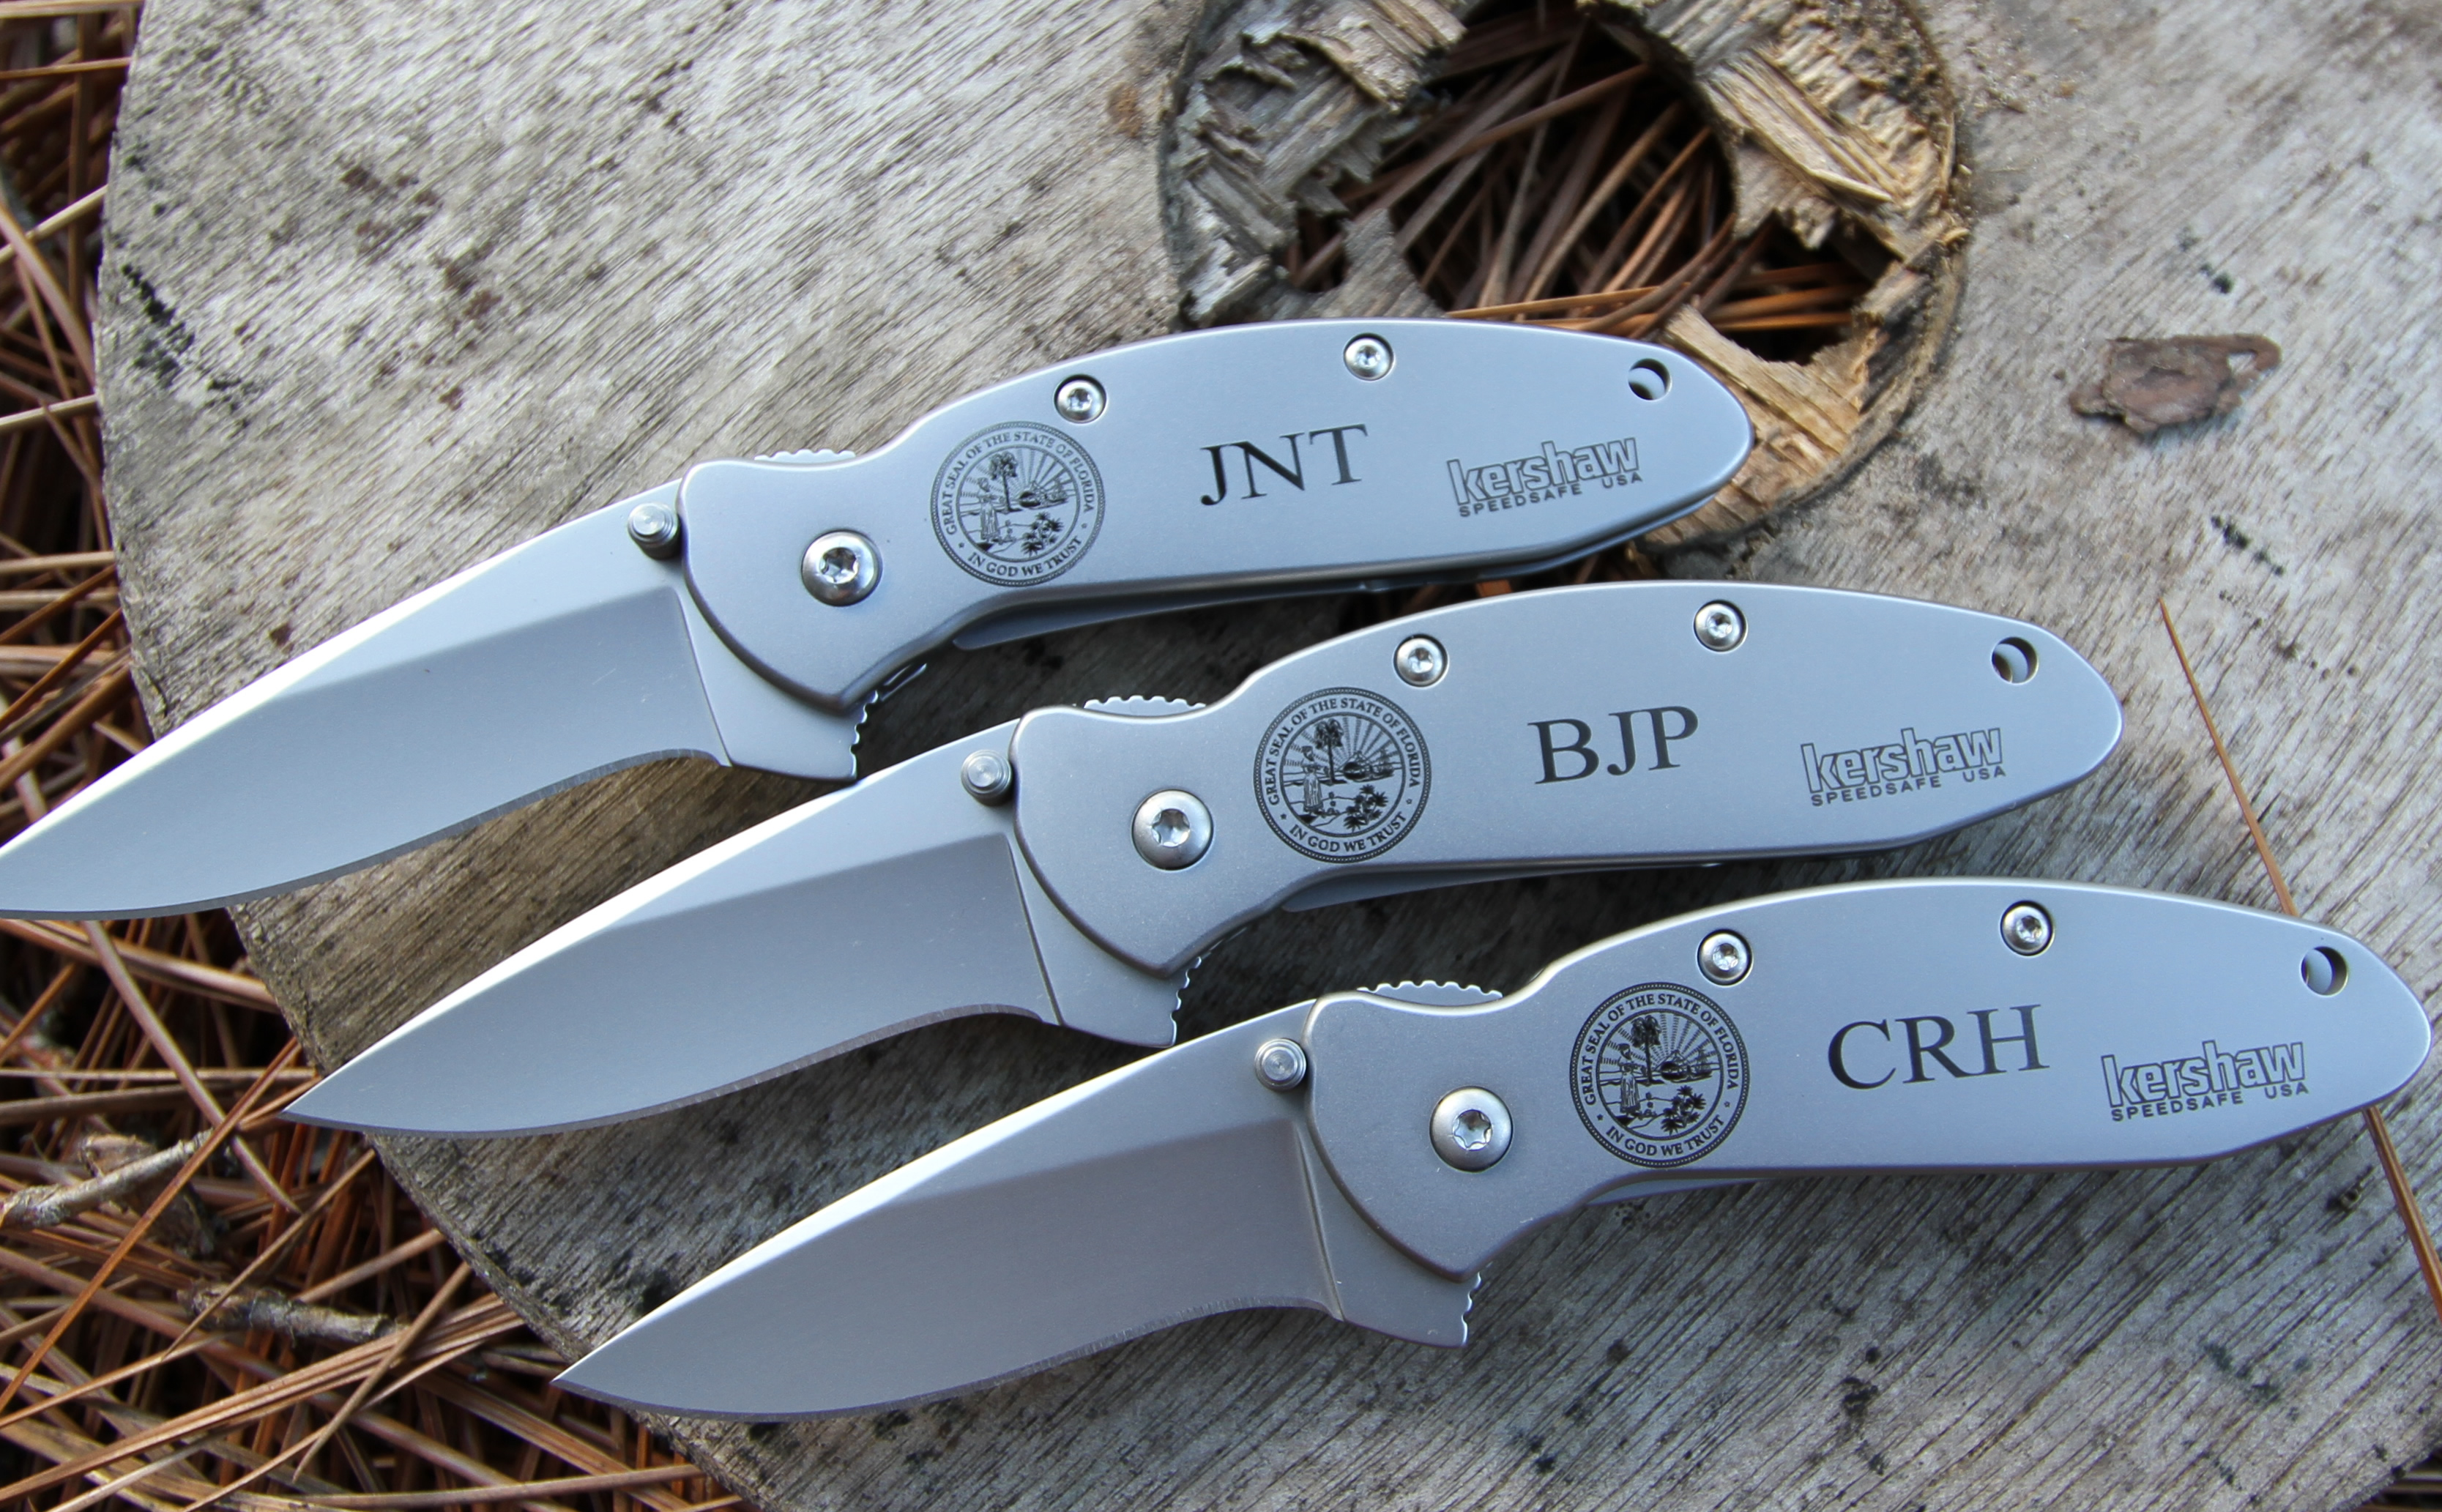 Kershaw Scallion with intricate, detailed Laser Engraving